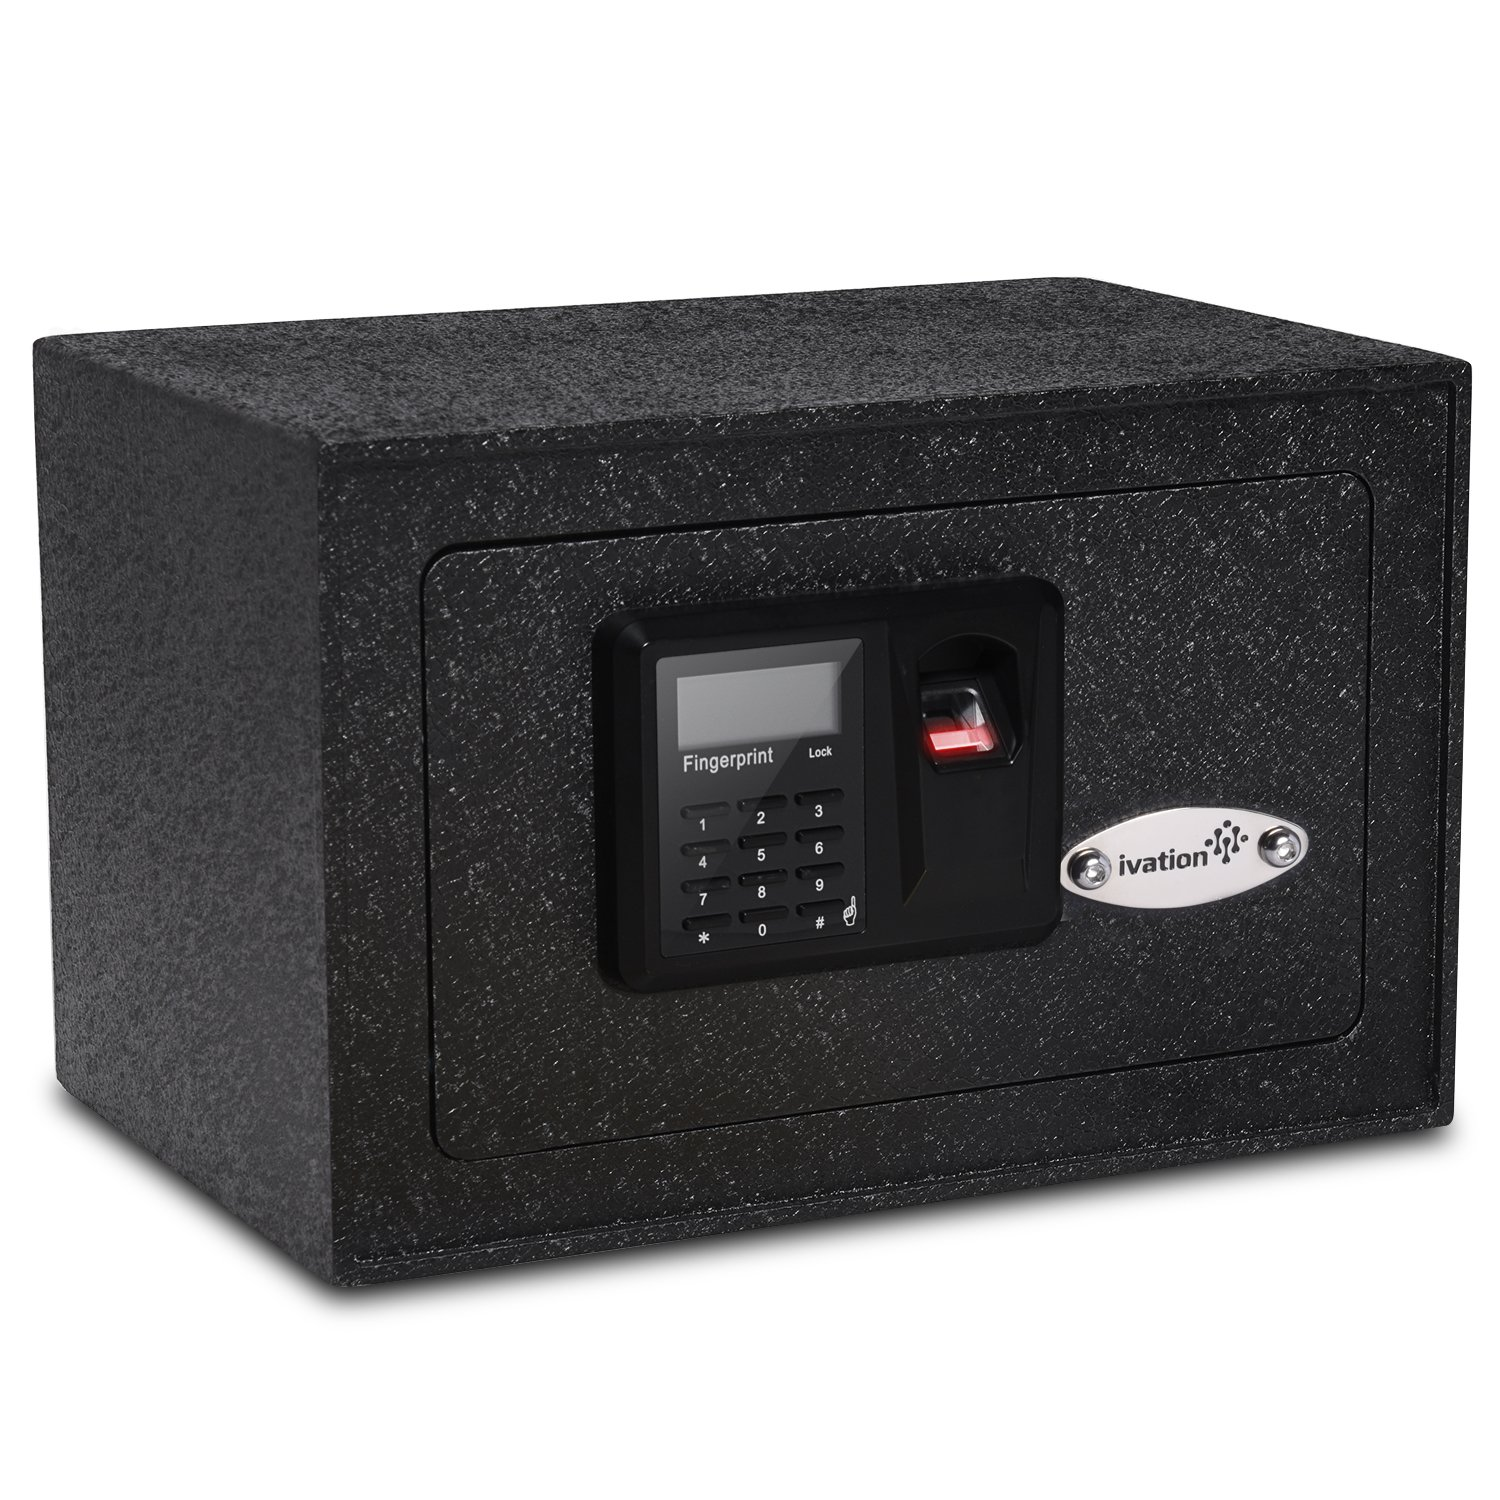 Ivation Solid Steel Biometric Personal Home Safe with Fast Access Fingerprint Recognition for Wall, Floor or Closet – Secures Jewelry, Gun, Pistol, Firearms, Money, Valuable, Collectibles & More